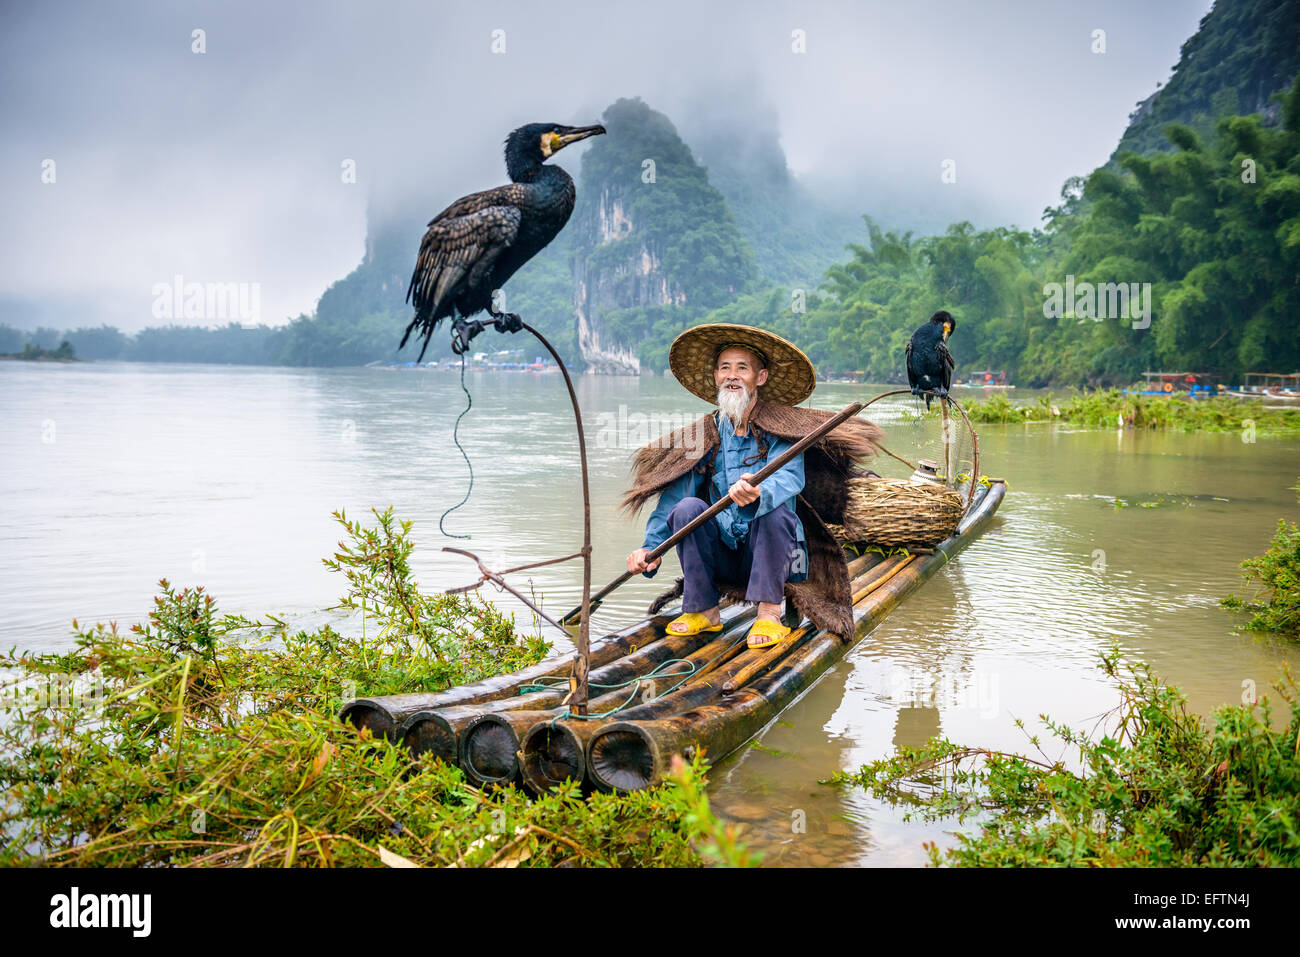 Cormorant fisherman and his bird on the Li River in Yangshuo, Guangxi, China. - Stock Image